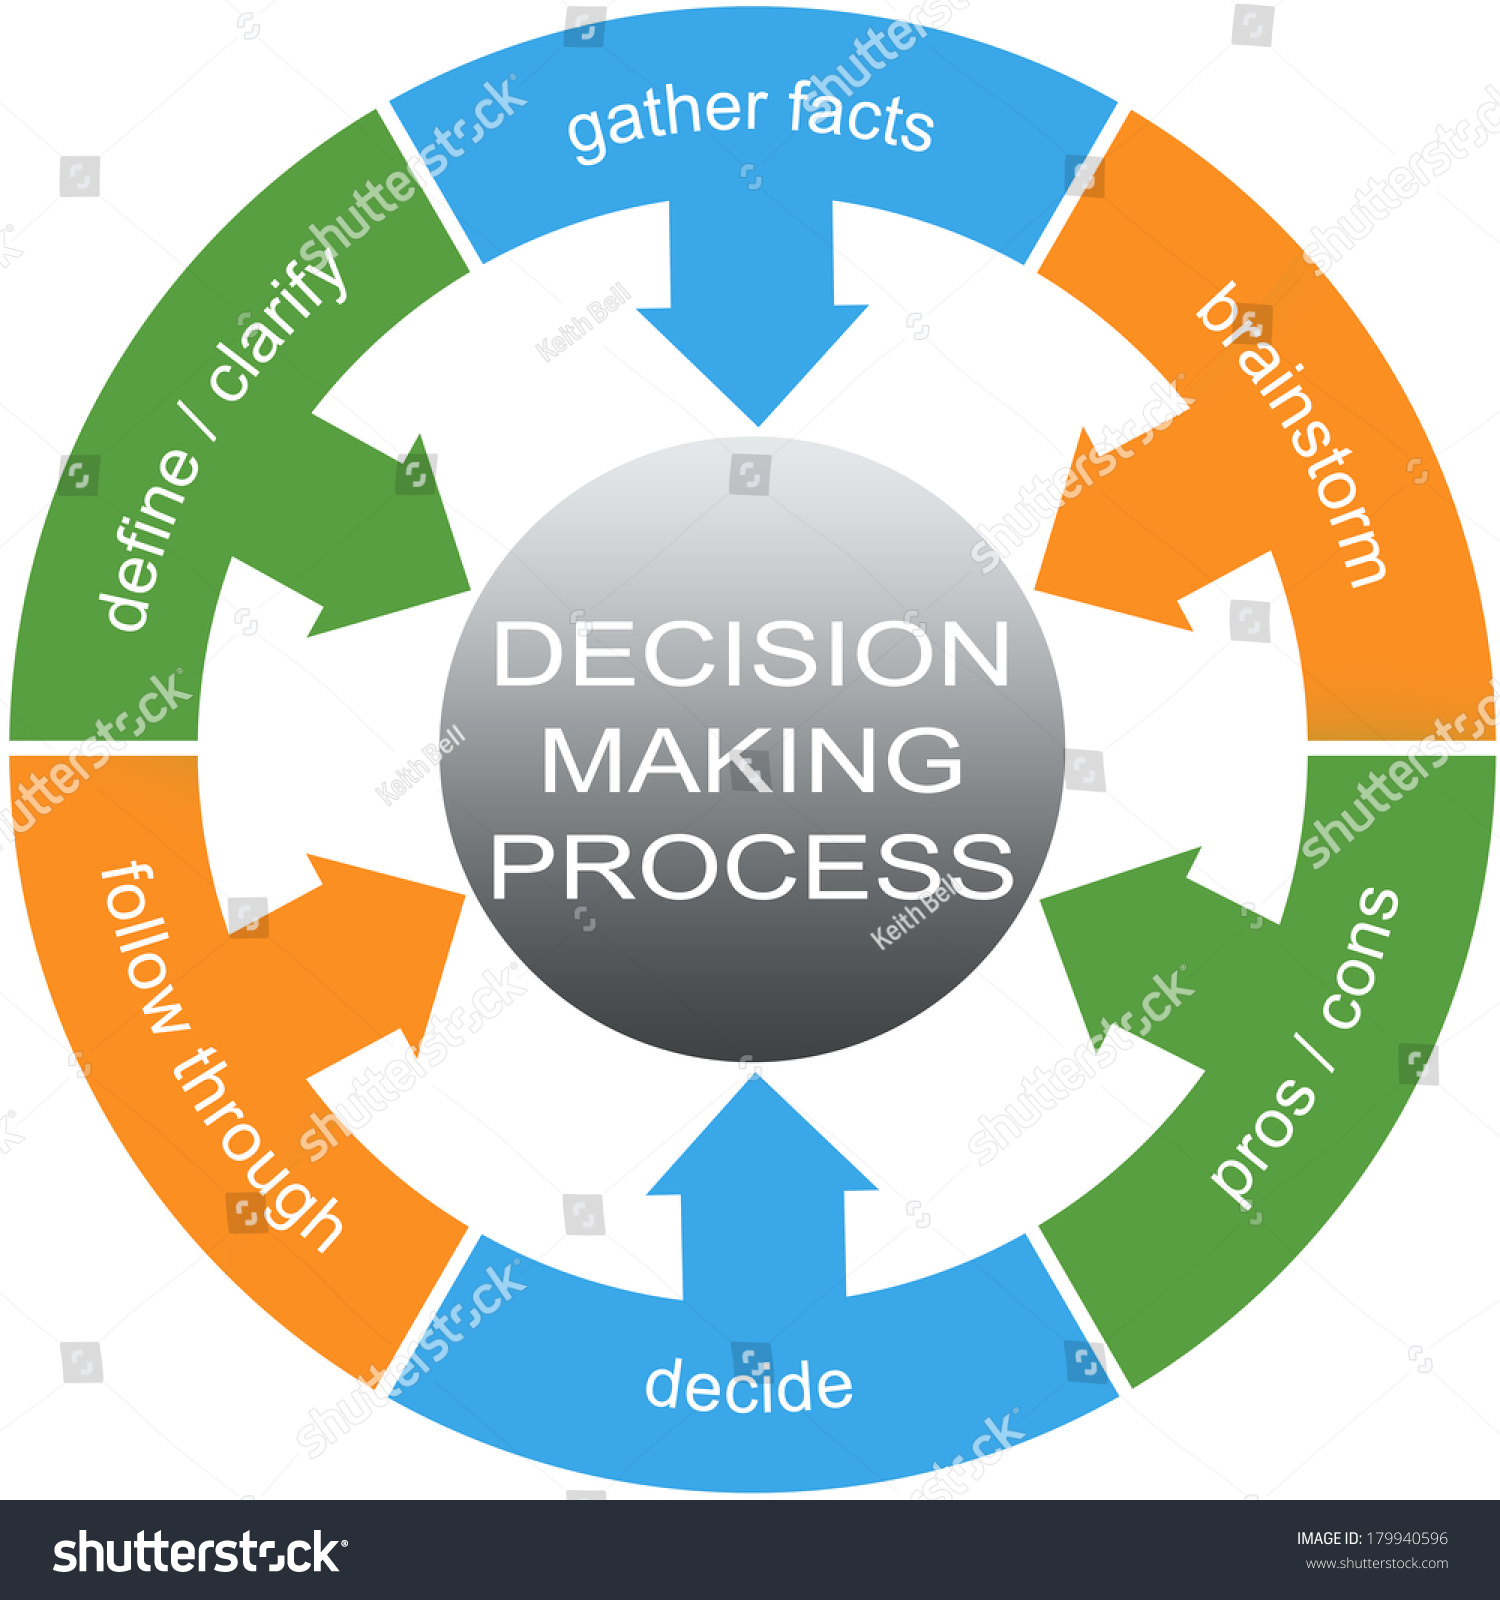 Decision Making Process Word Circles Concept Stock Illustration ...